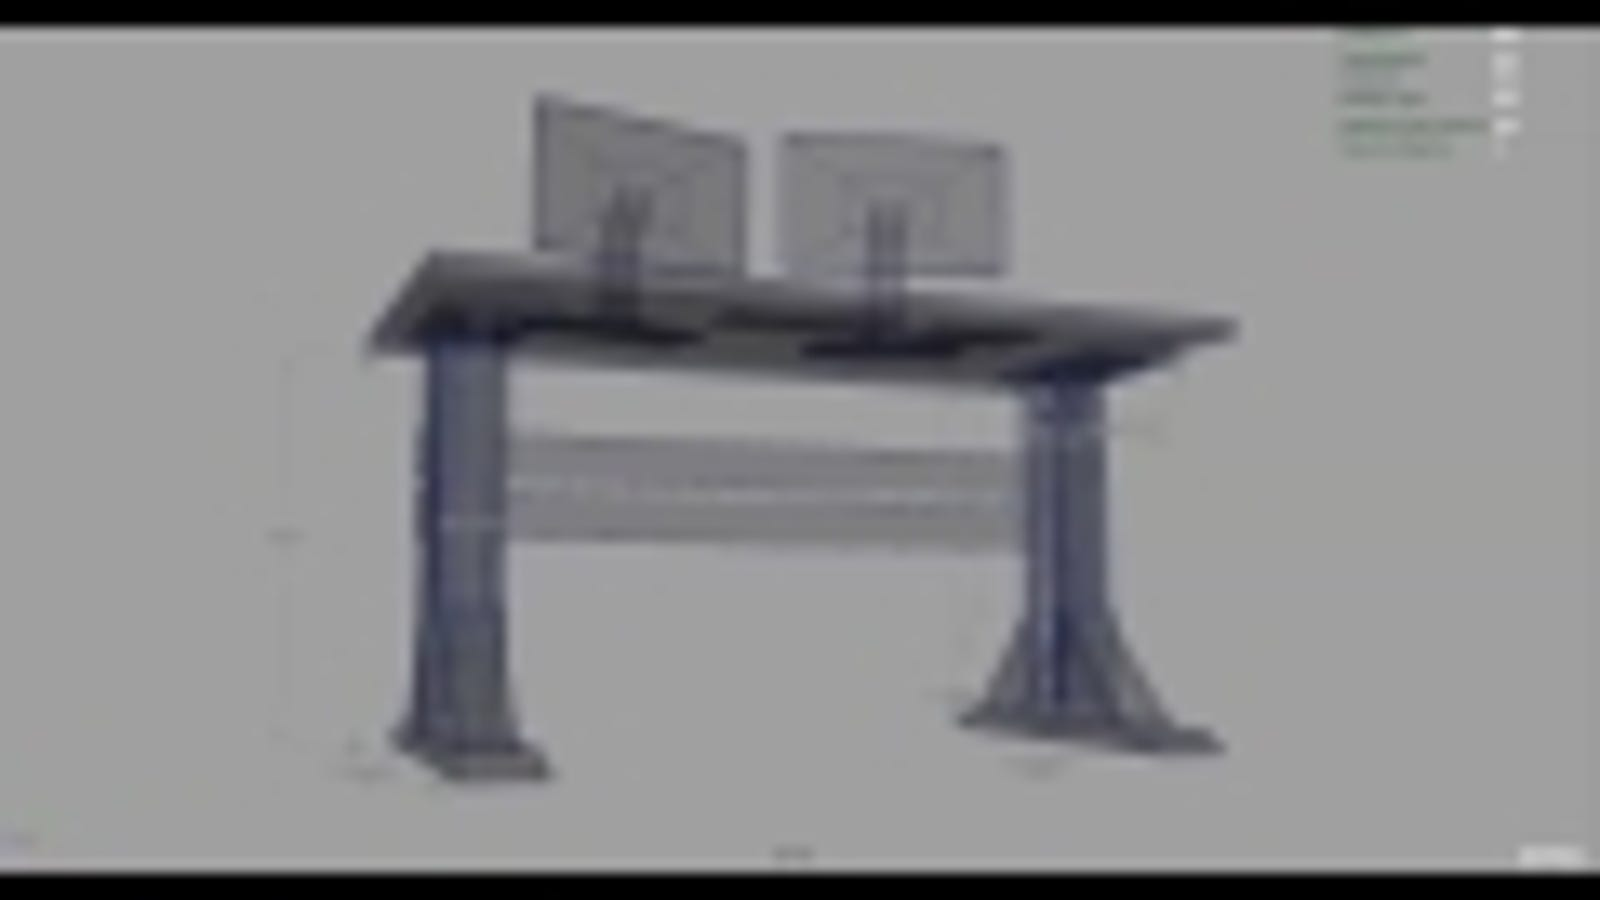 Build Your Own Electric Standing Desk - Electrically driven adjustable table legs